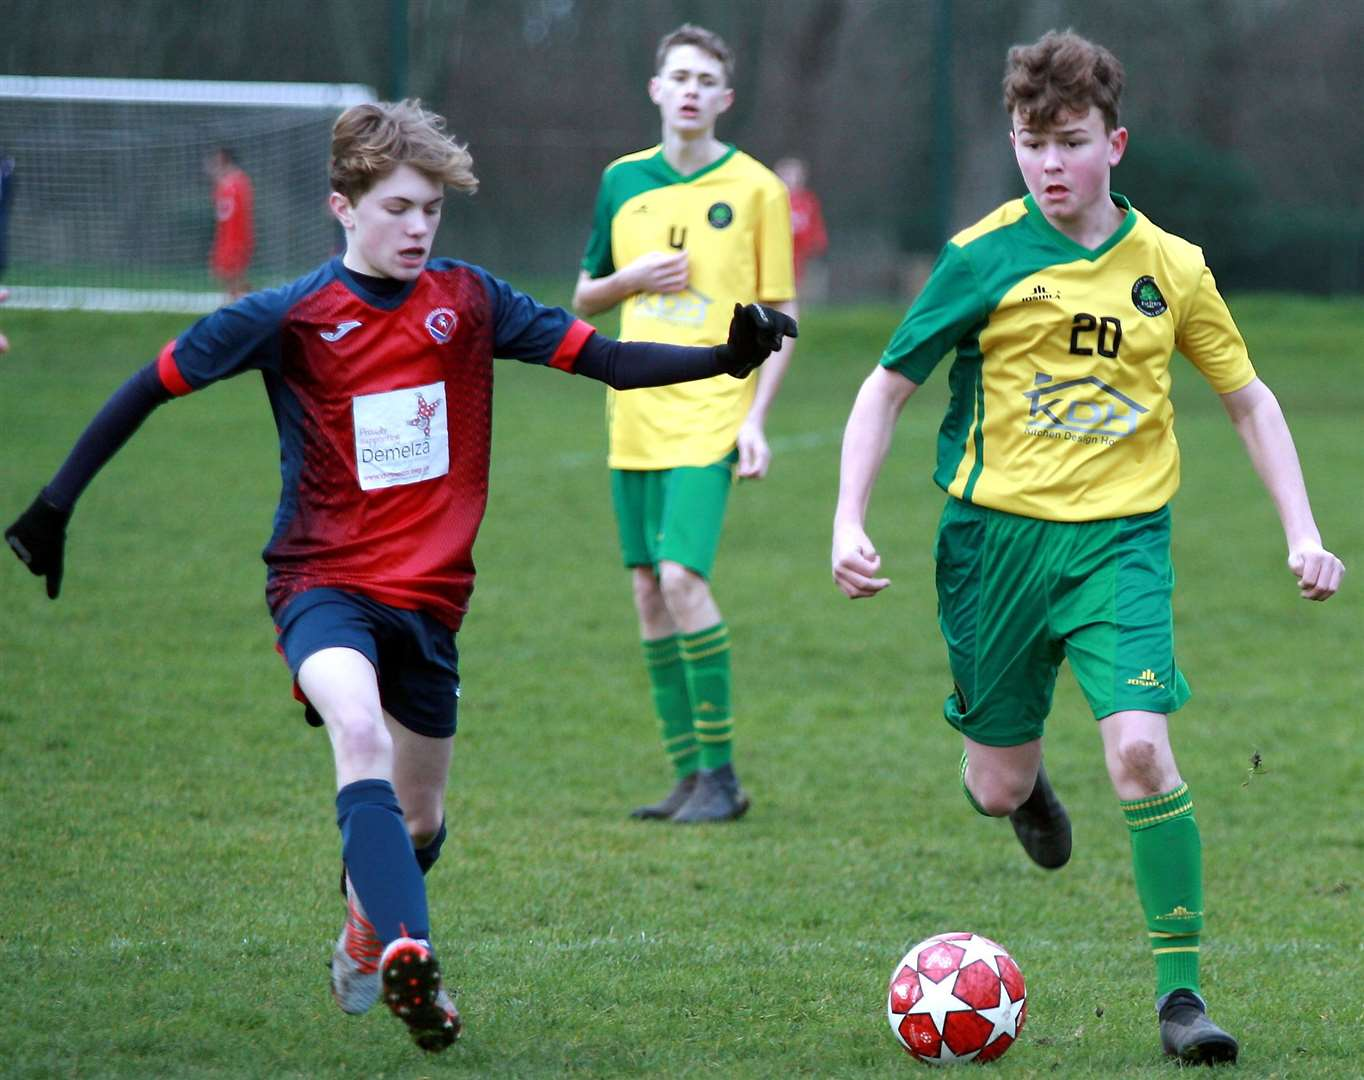 Hempstead Valley under-15s takes on Cliffe Woods Colts under-15s (green) on Sunday. Picture: Phil Lee FM26563261